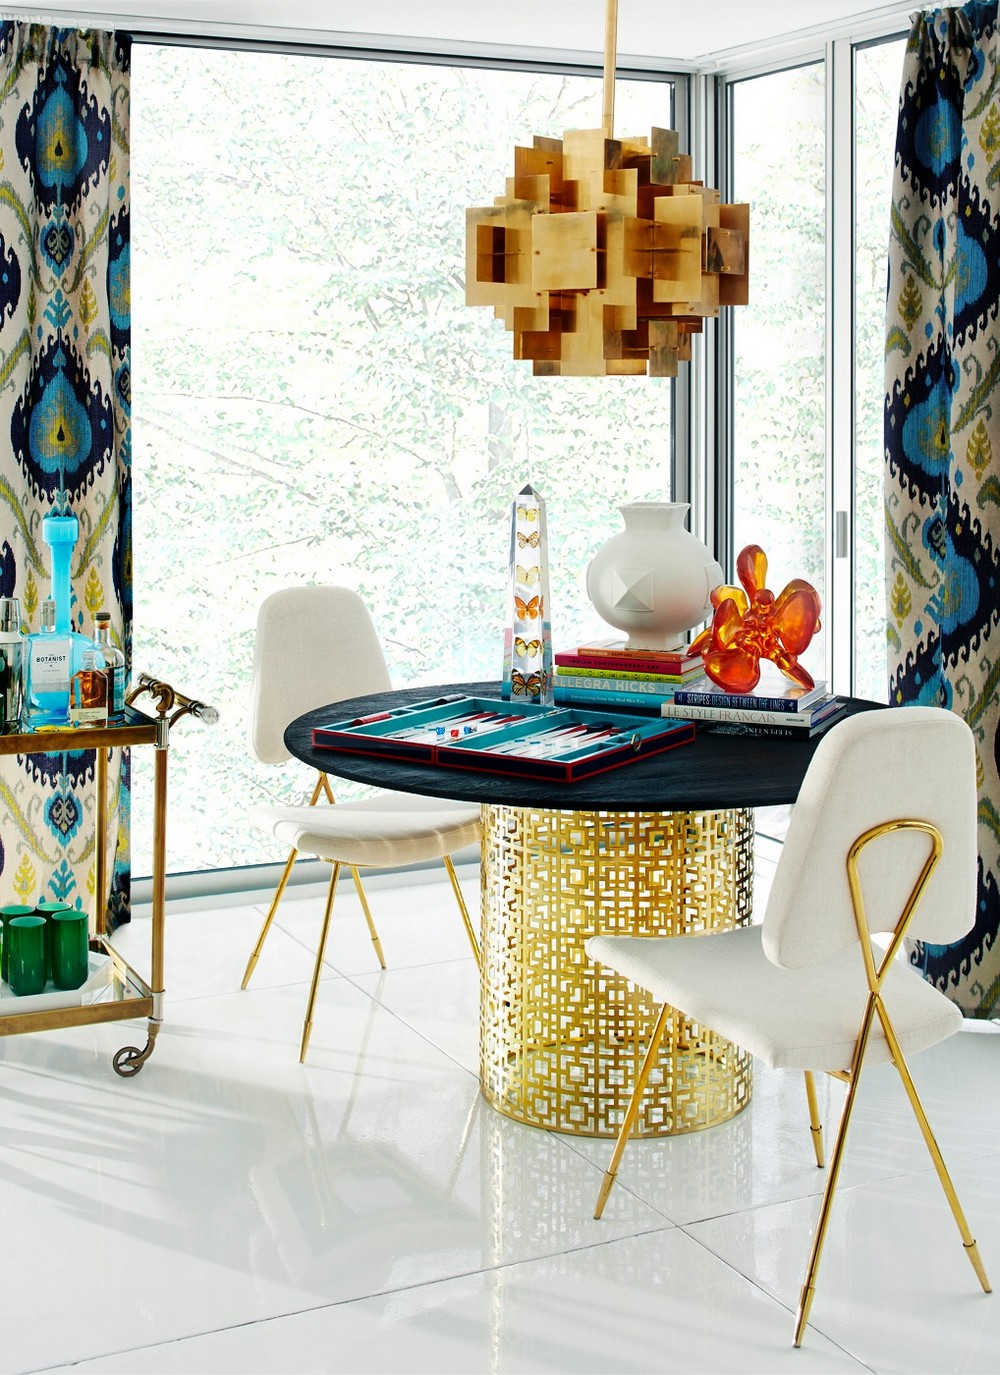 Modern Dining Tables by Jonathan Adler jonathan adler Modern Dining Tables by Jonathan Adler nixon mad about the house